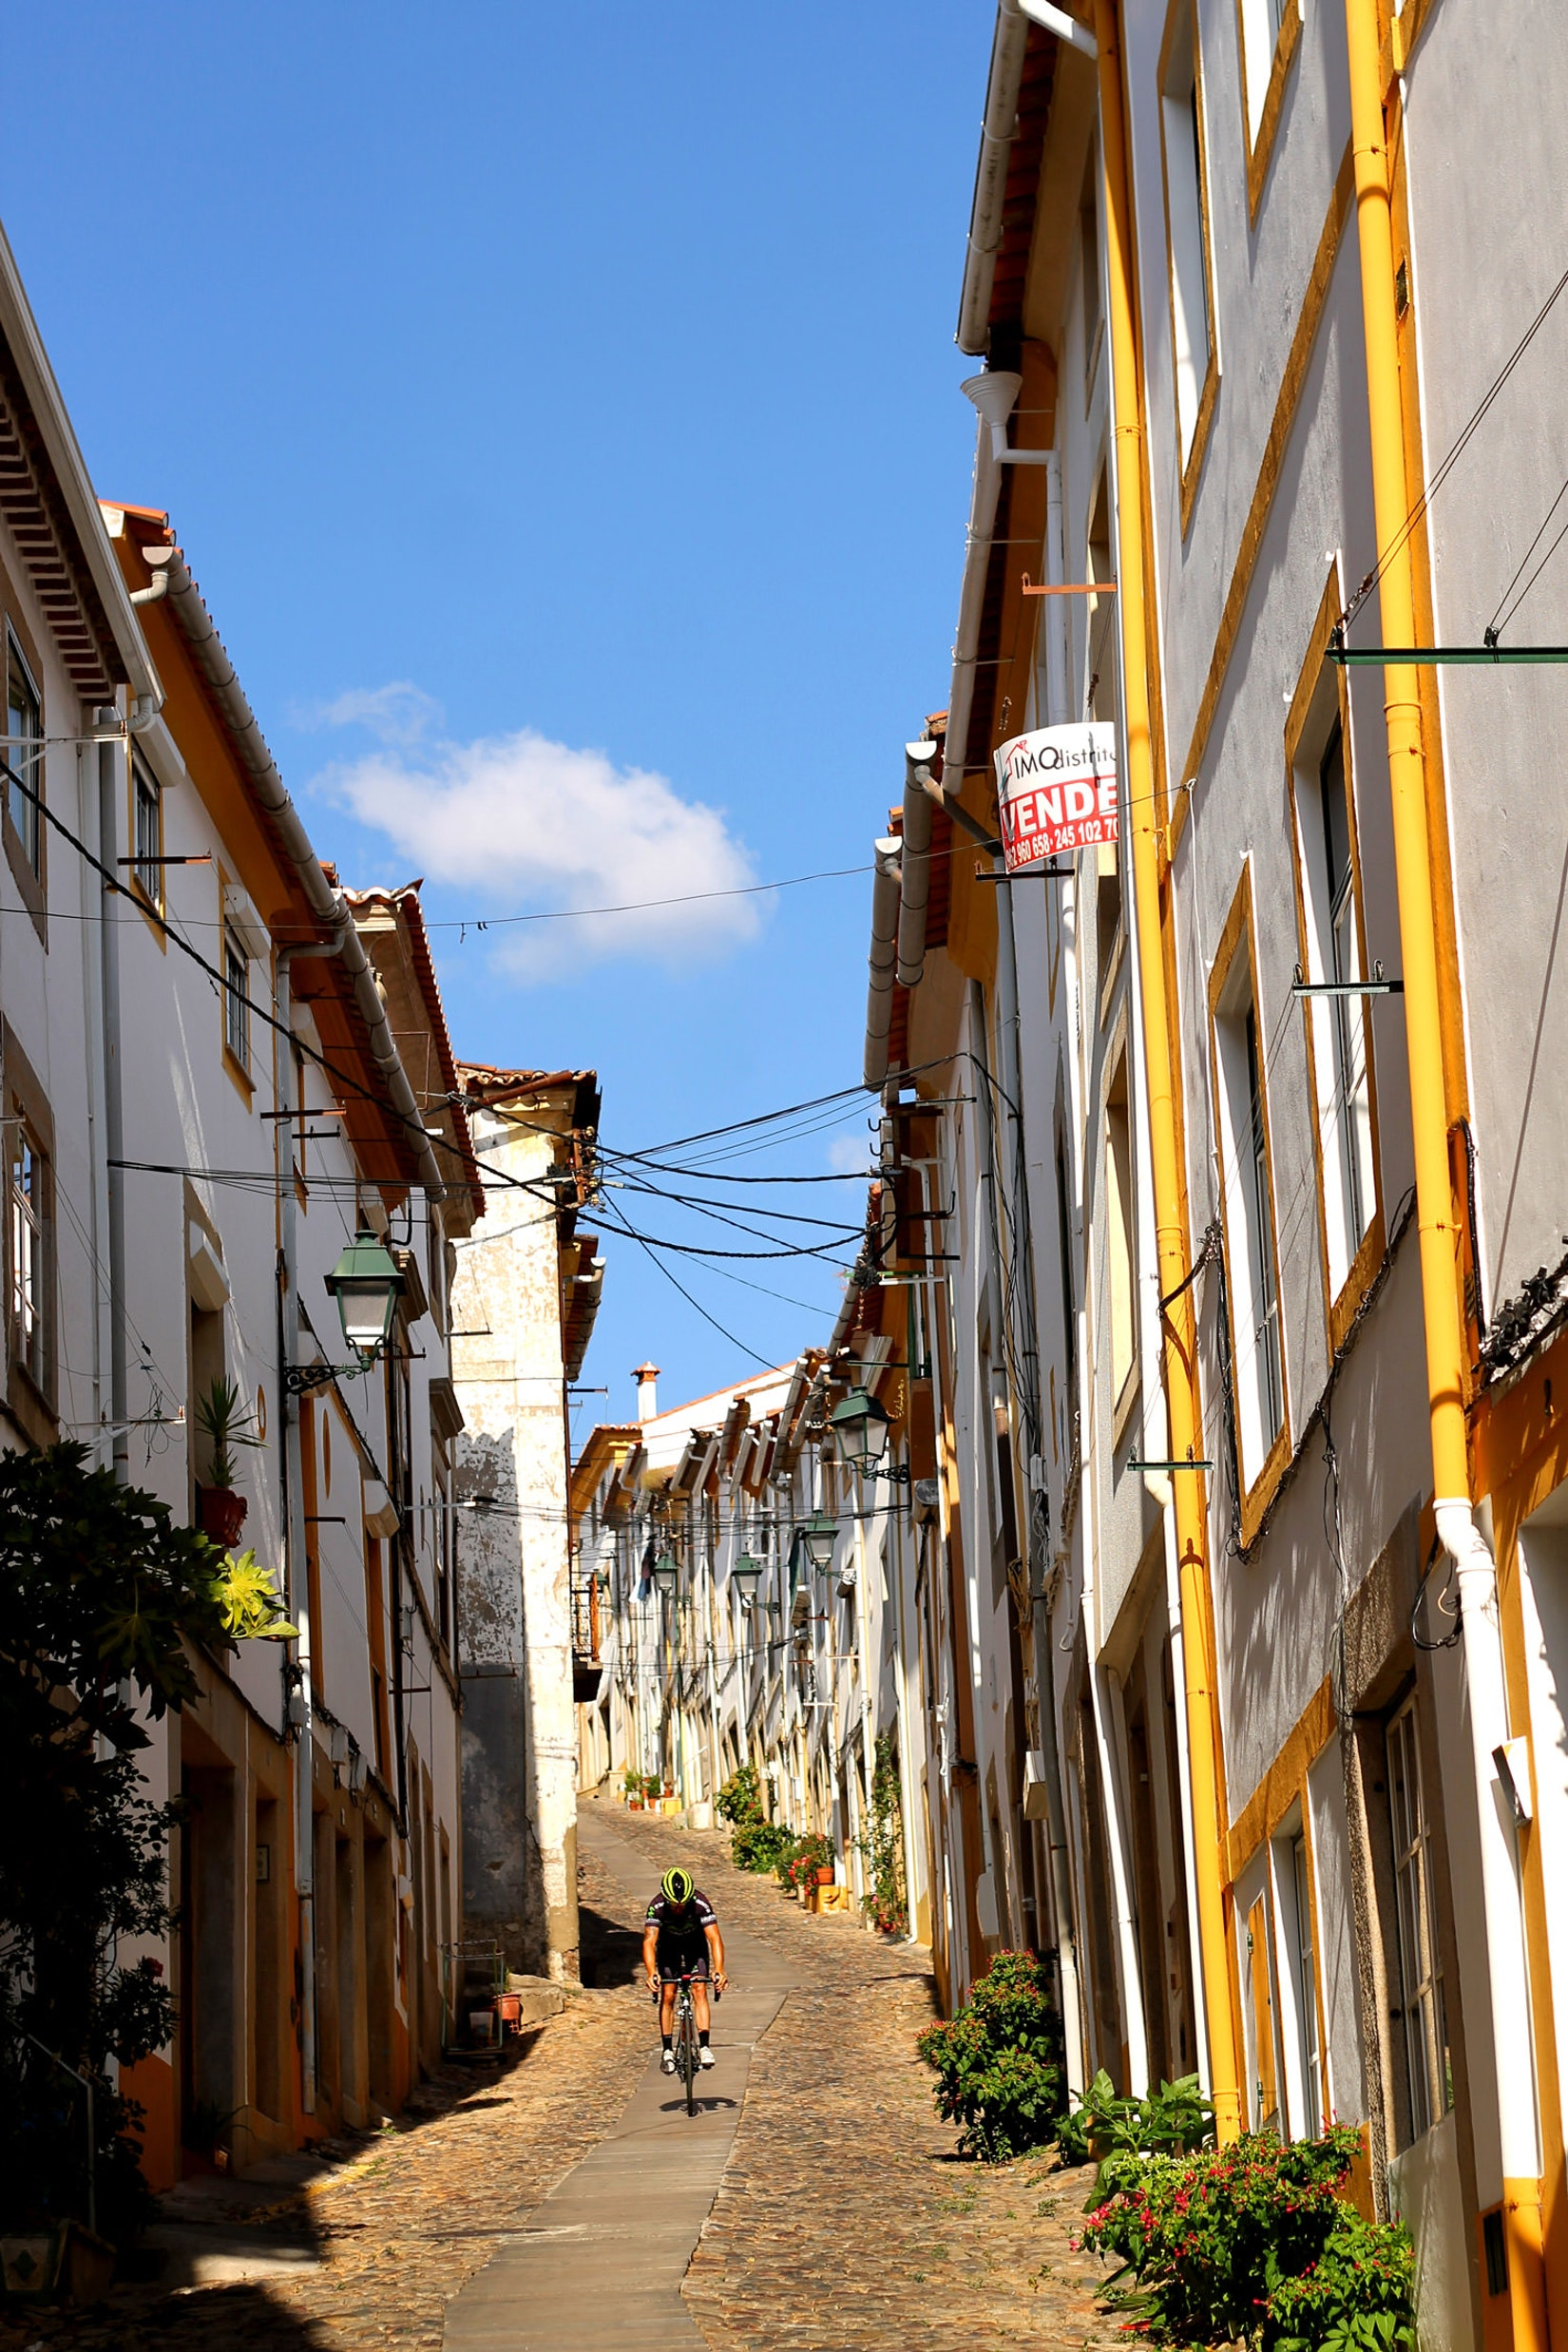 A hilly street with a biker in Castelo de Vide